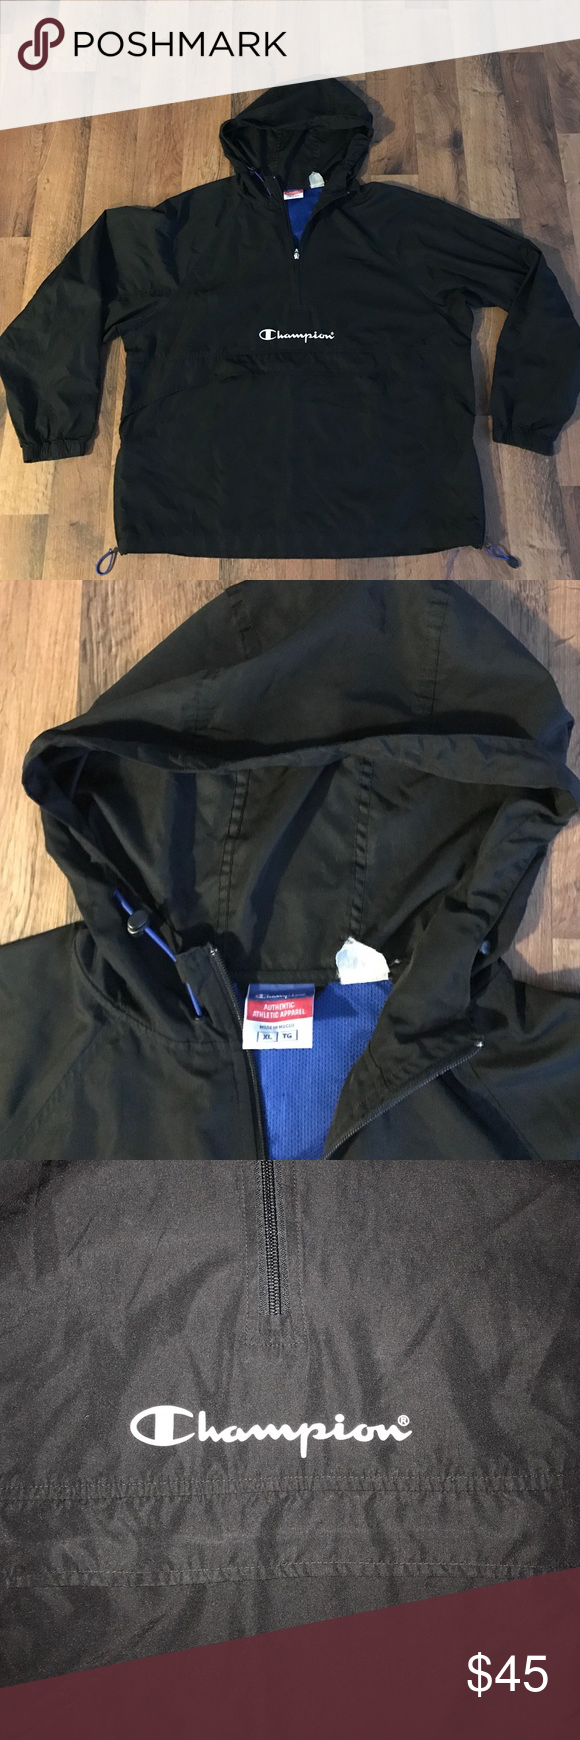 Vintage Xl Champion Spell Out Pullover Jacket Pullover Jacket Jackets Champion Jacket [ 1740 x 580 Pixel ]